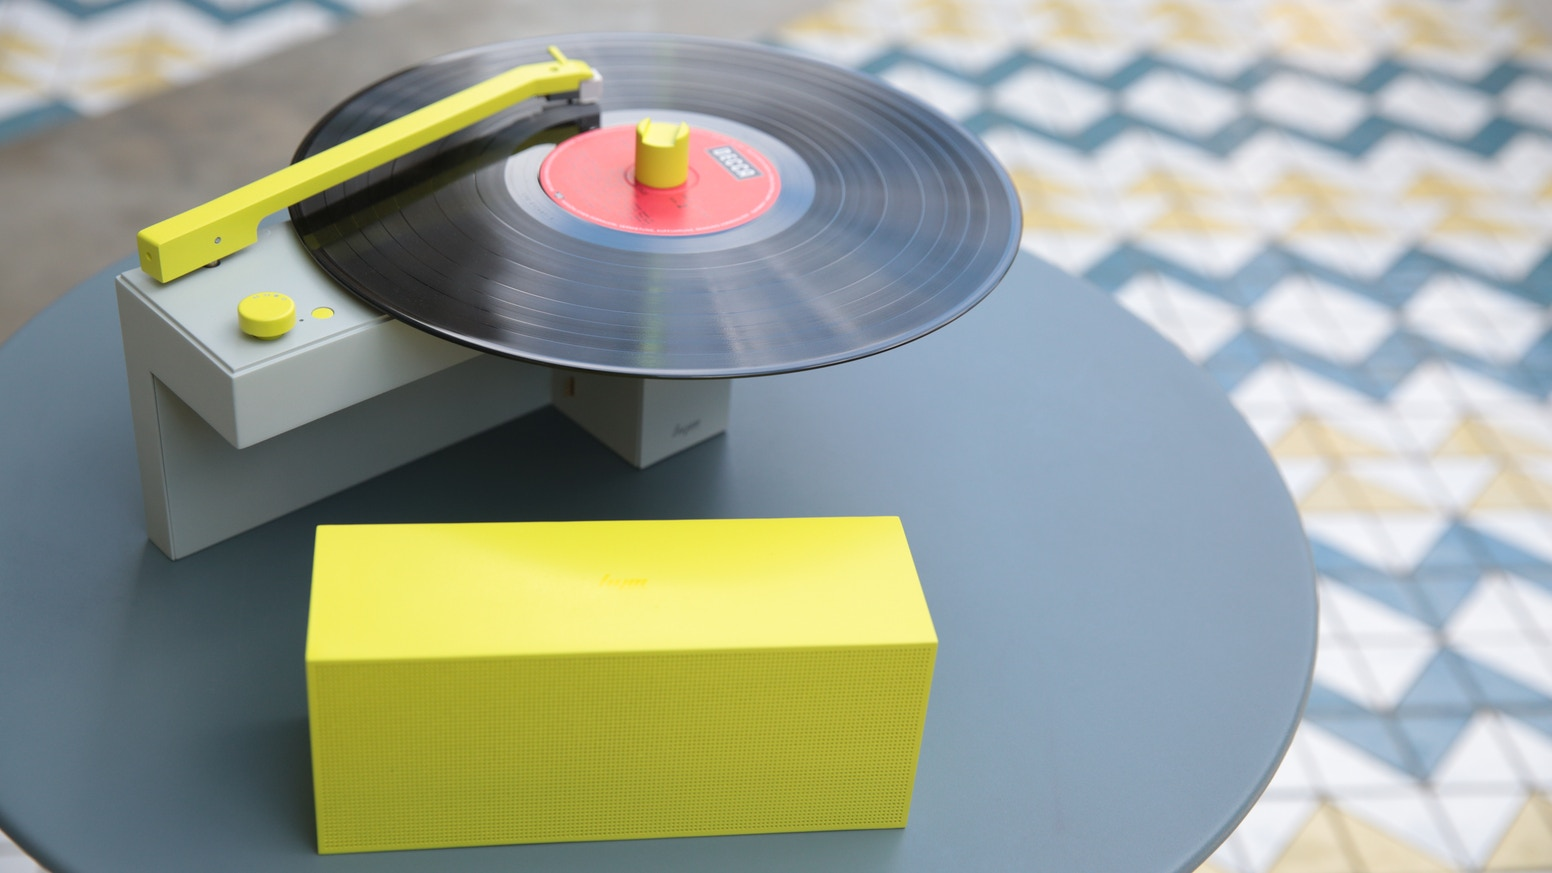 This is DUO, offering vinyl, Bluetooth, and smart capabilities in one ultra-compact, intuitive setup.